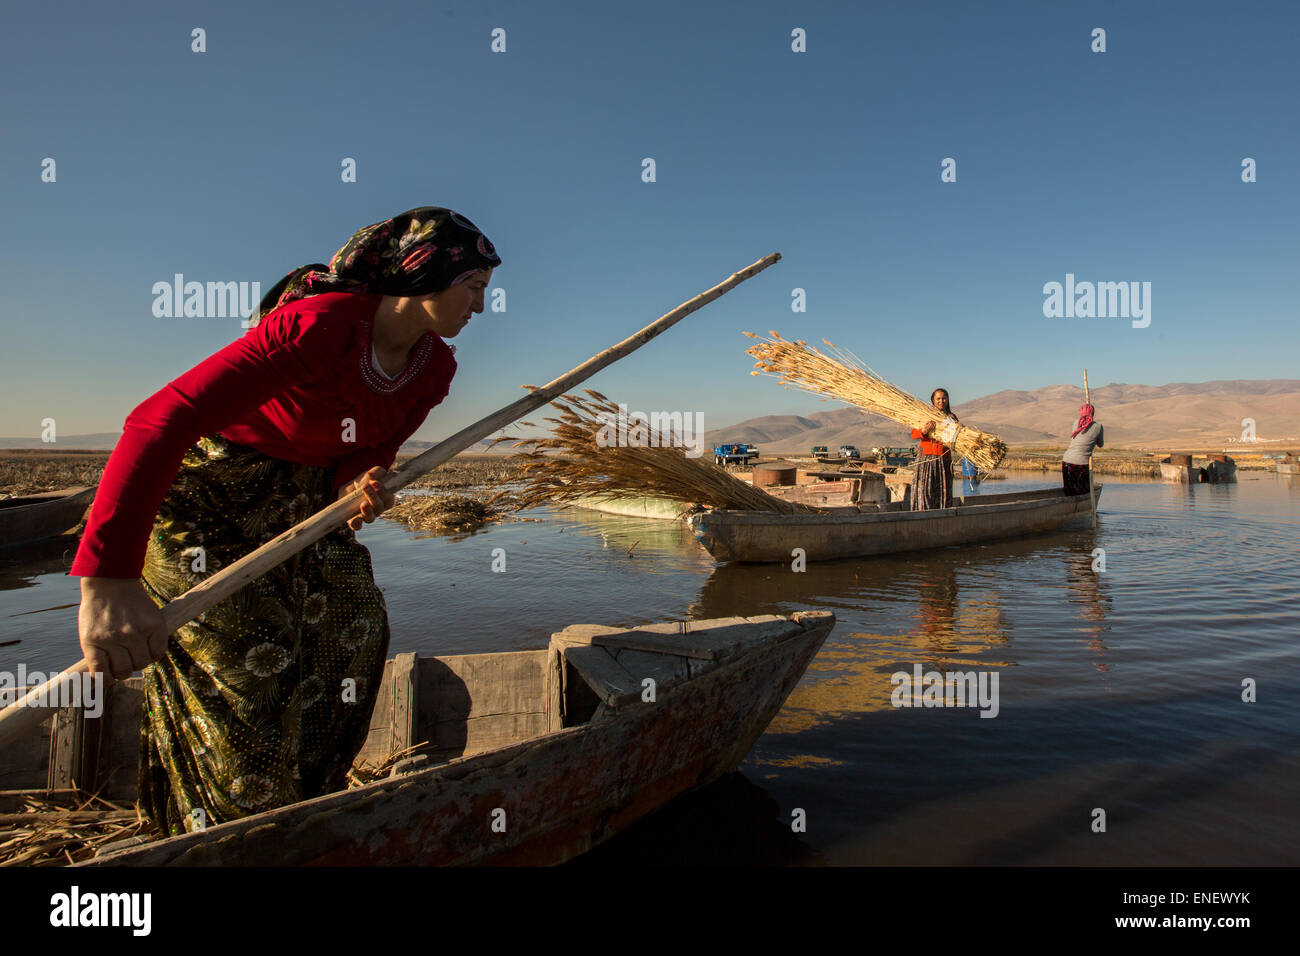 AFYONKARAHISAR,TURKEY - November 9,2013 : Unidentified woman workers harvest reeds and bulrush from the Lake Eber - Stock Image